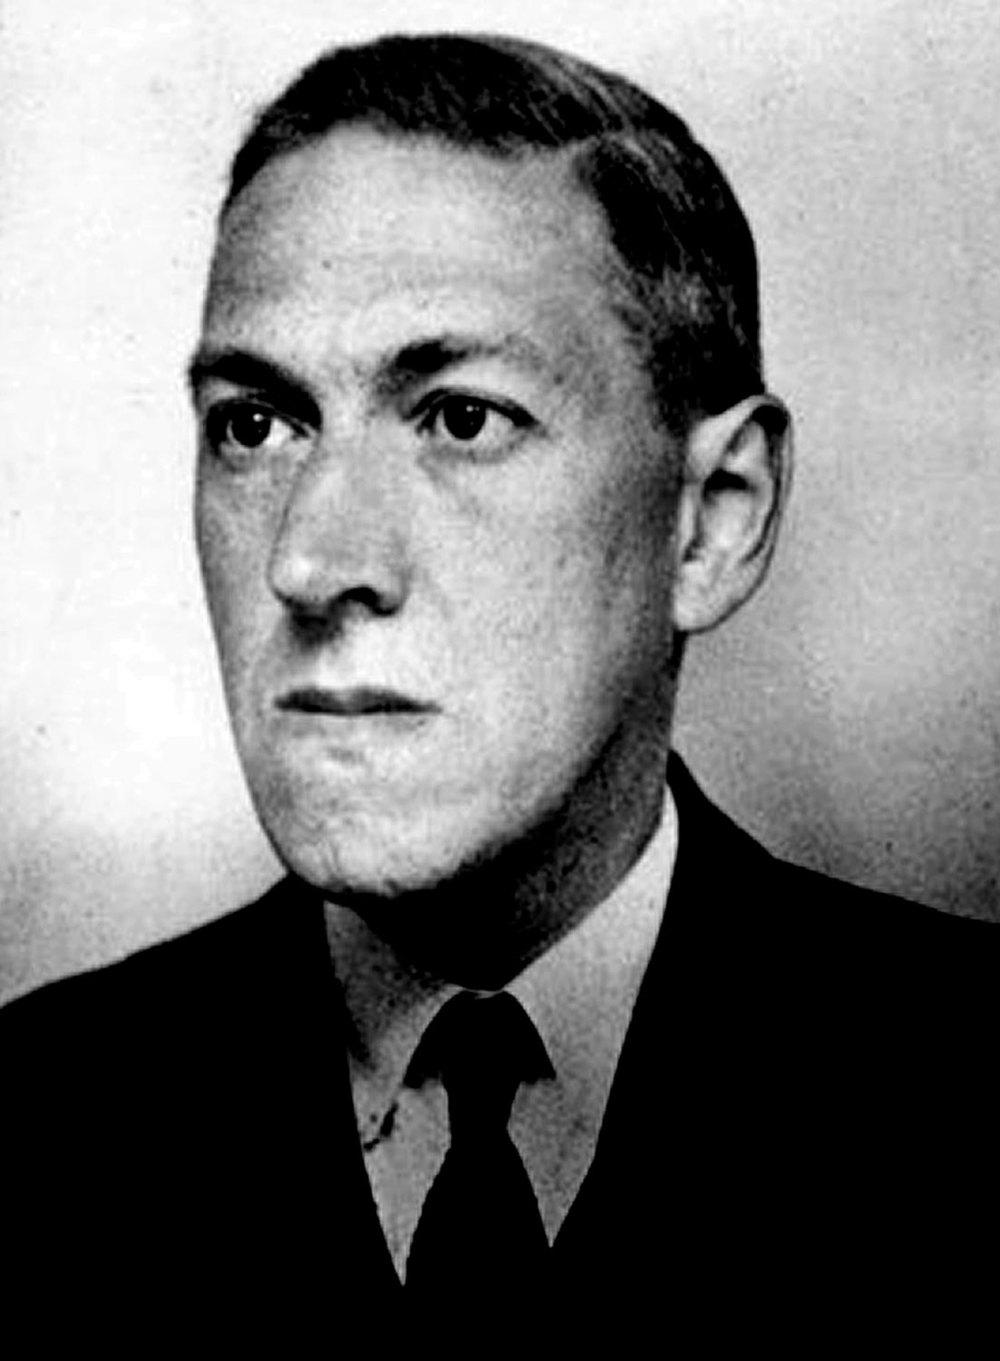 H. Ph. Lovecraft